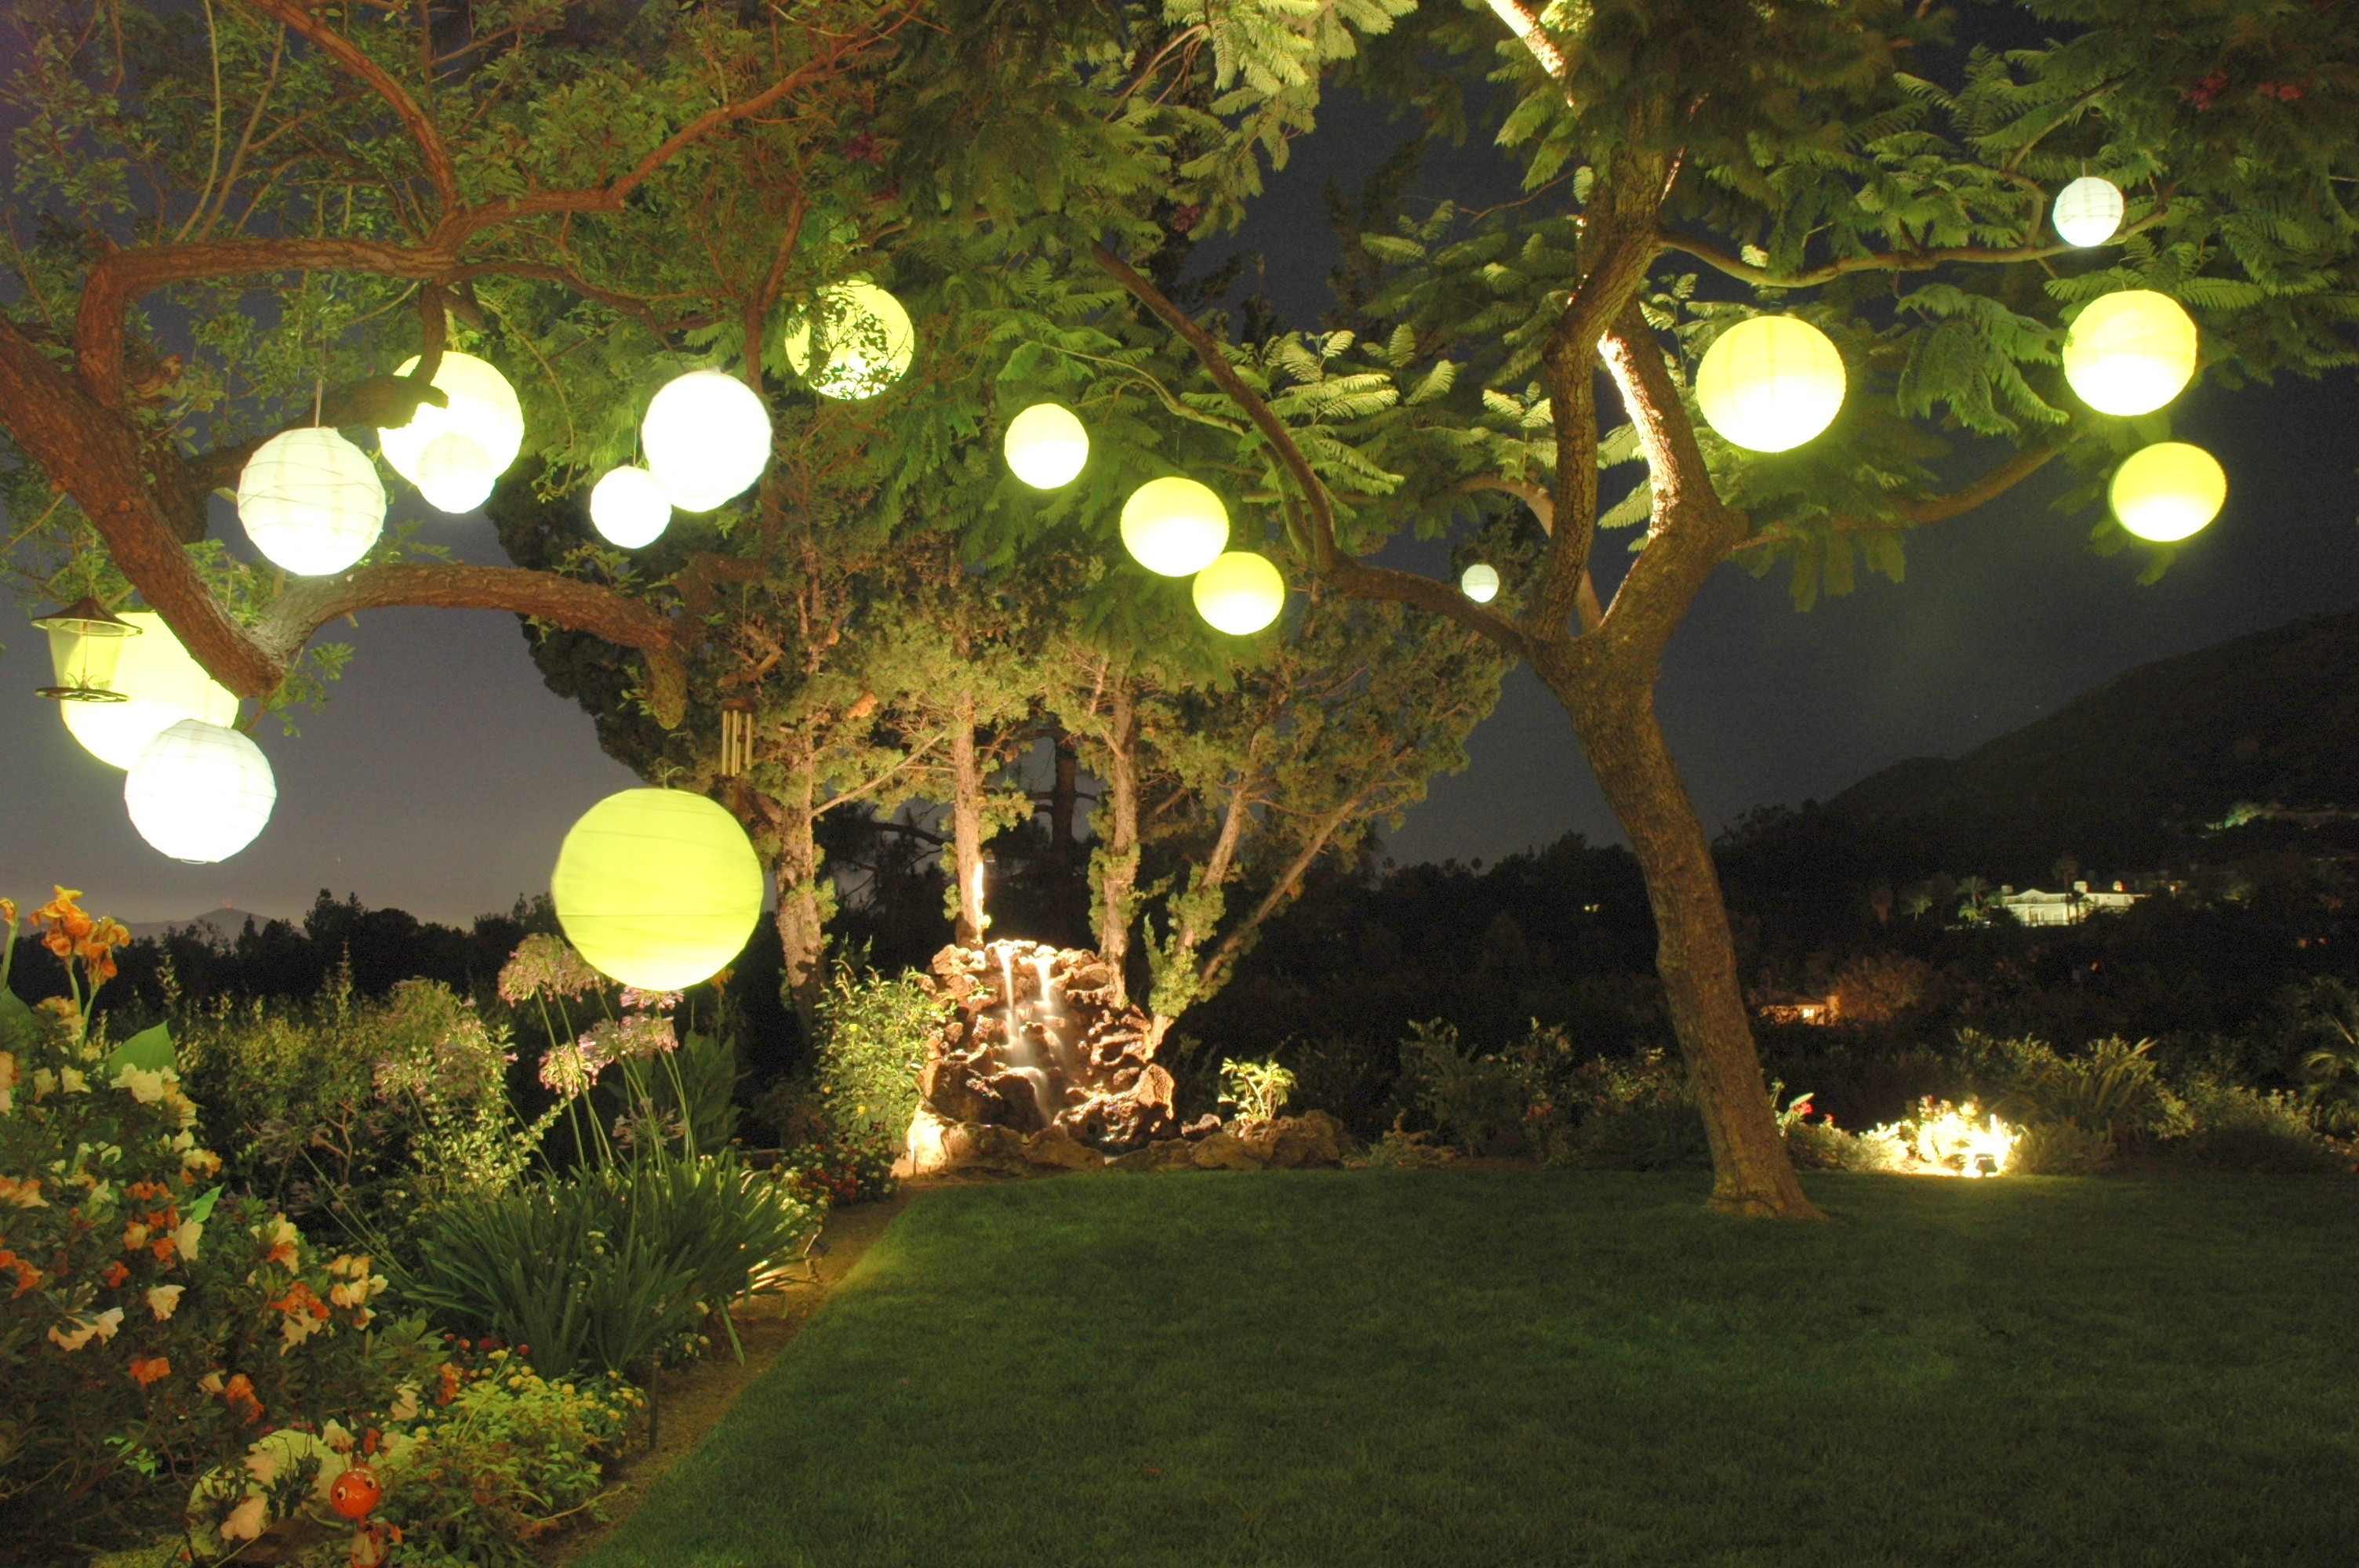 Decorating: Garden Party With Paper Lantern Light intended for Outdoor Hanging Japanese Lanterns (Image 6 of 20)